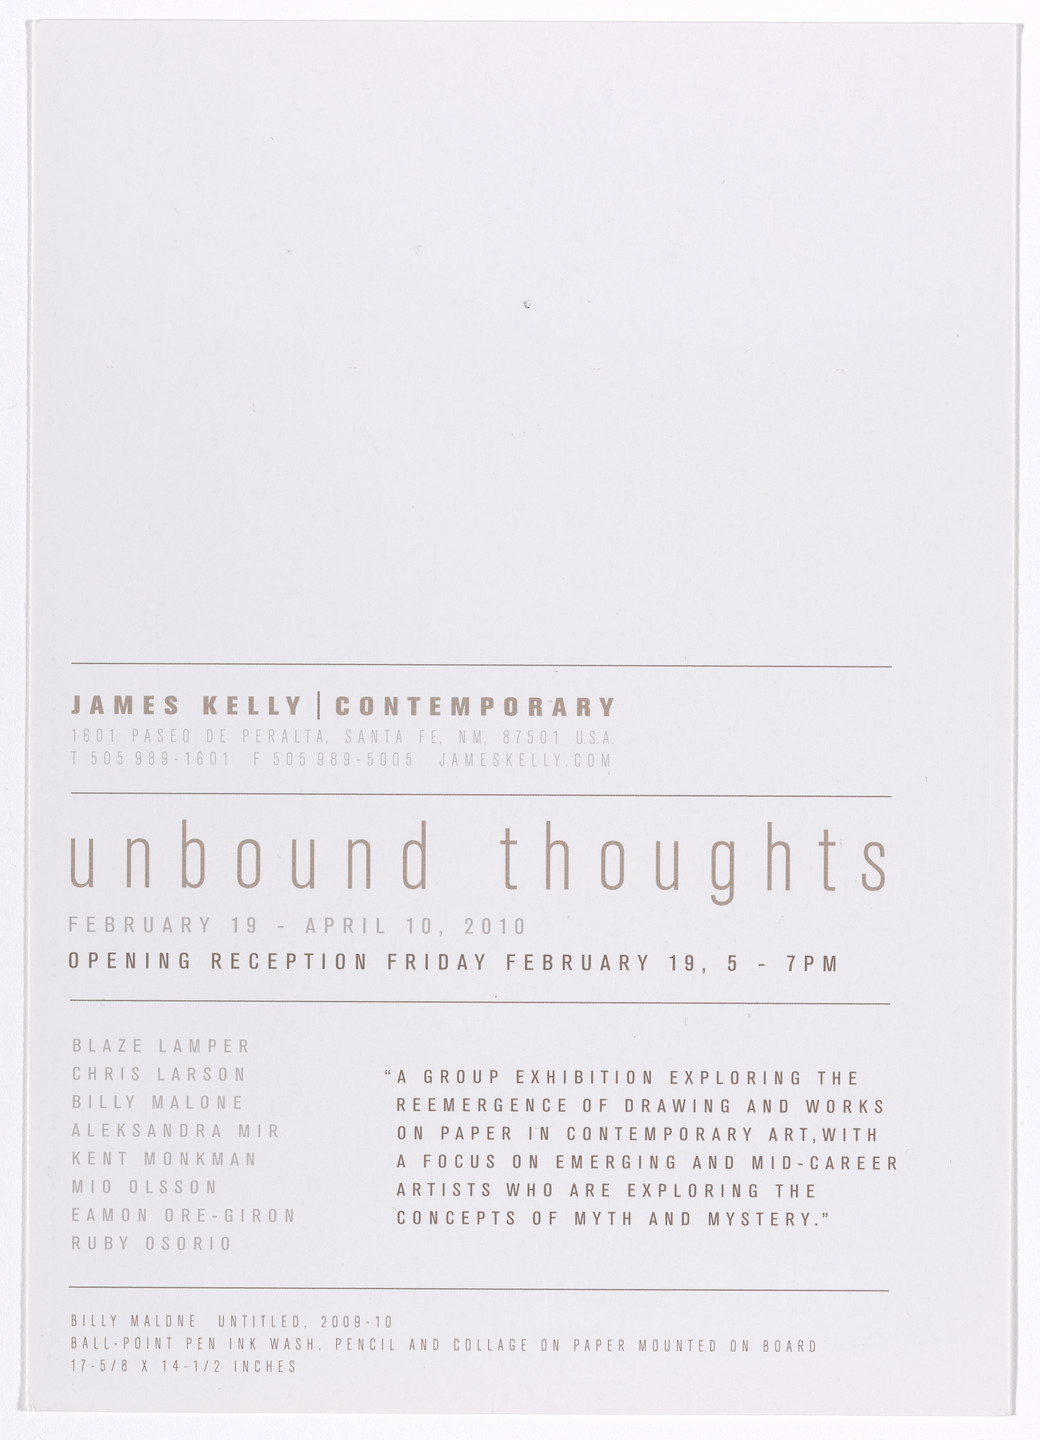 Aleksandra Mir. Announcement card for Unbound Thoughts, James Kelly Contemporary, Santa Fe, February 19–April 10, 2010. 2010